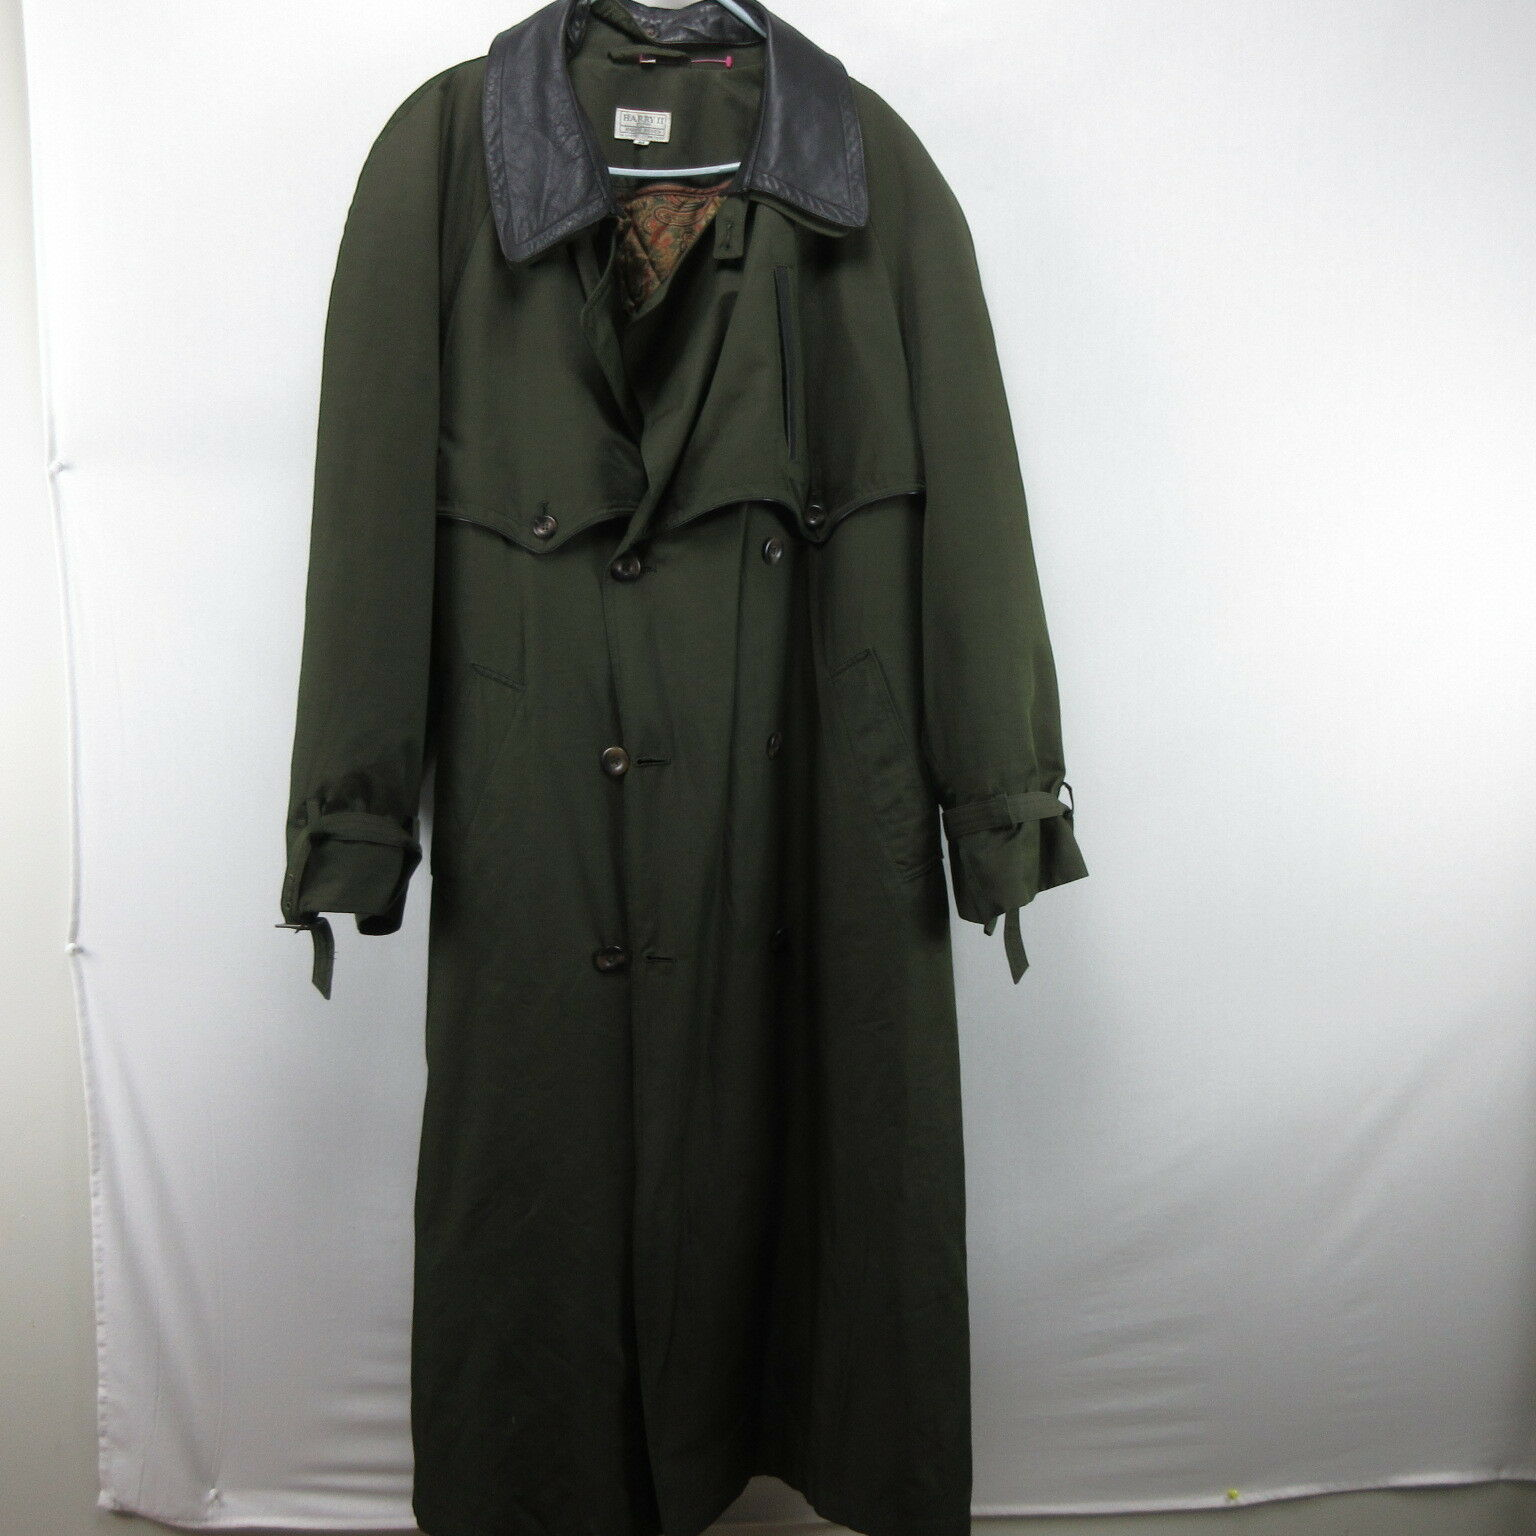 Olive Green Harry Rosen Trench Coat Jacket 44 Wint